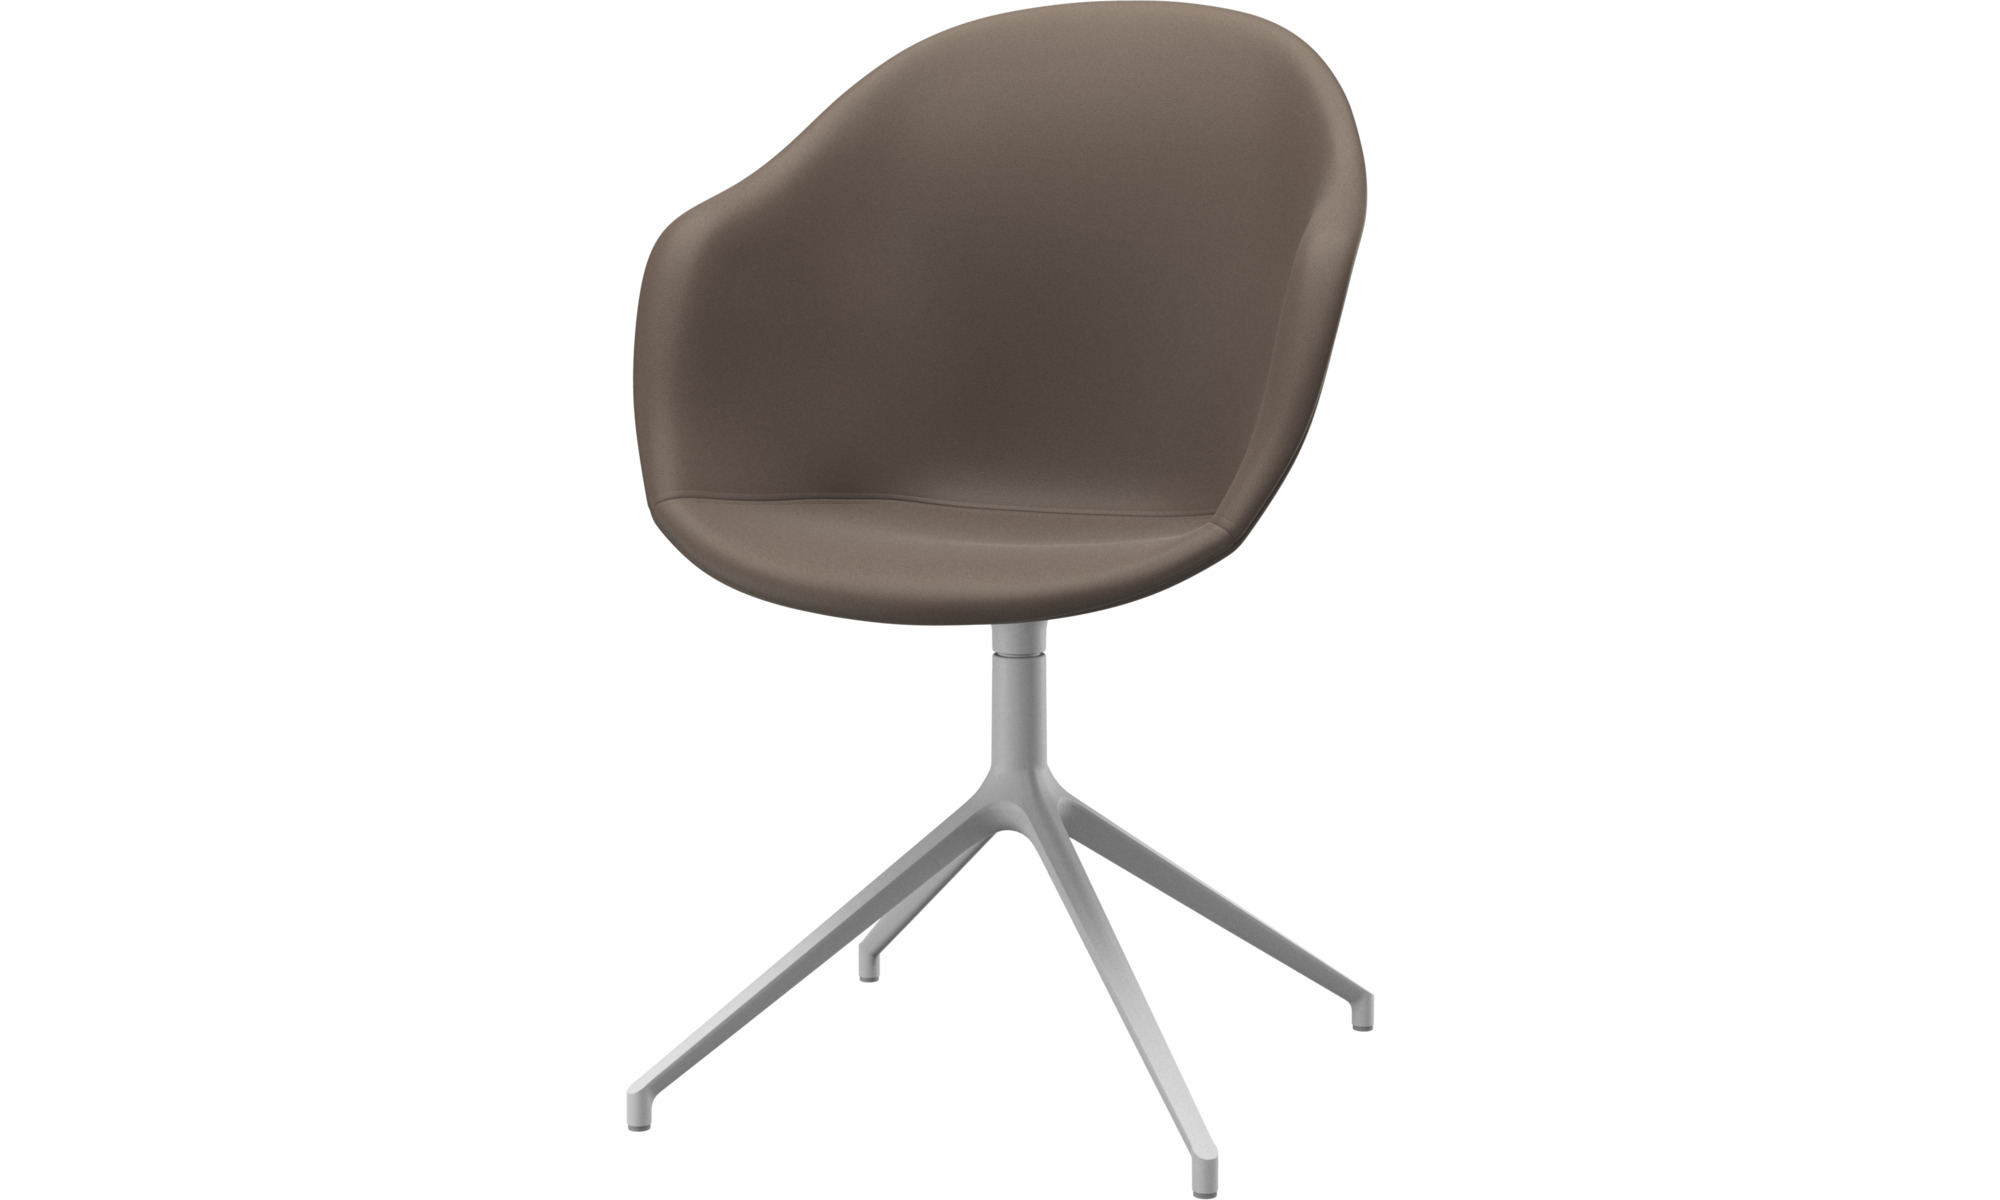 Home office chairs - Adelaide chair with swivel function - Grey - Leather